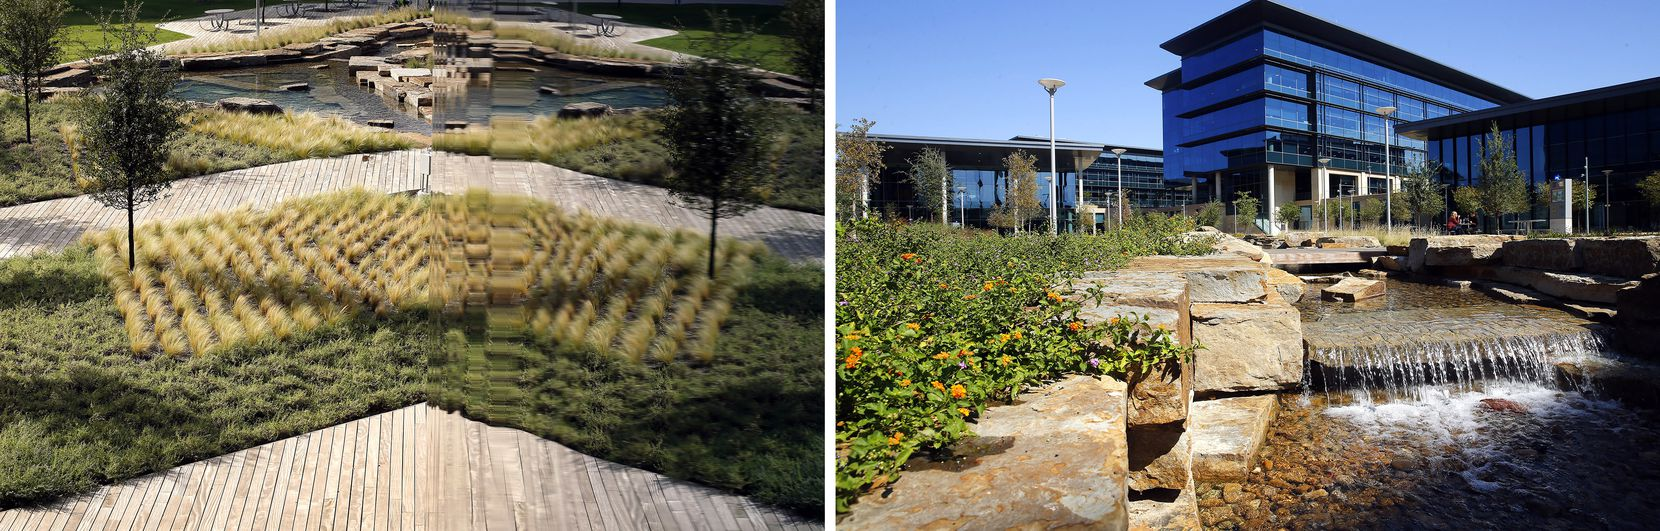 Drought-resistant landscaping and an artificial creek are reflected in the glass exterior of the Commons building (left). Lantana grows along the creek fed by harvested rainwater.